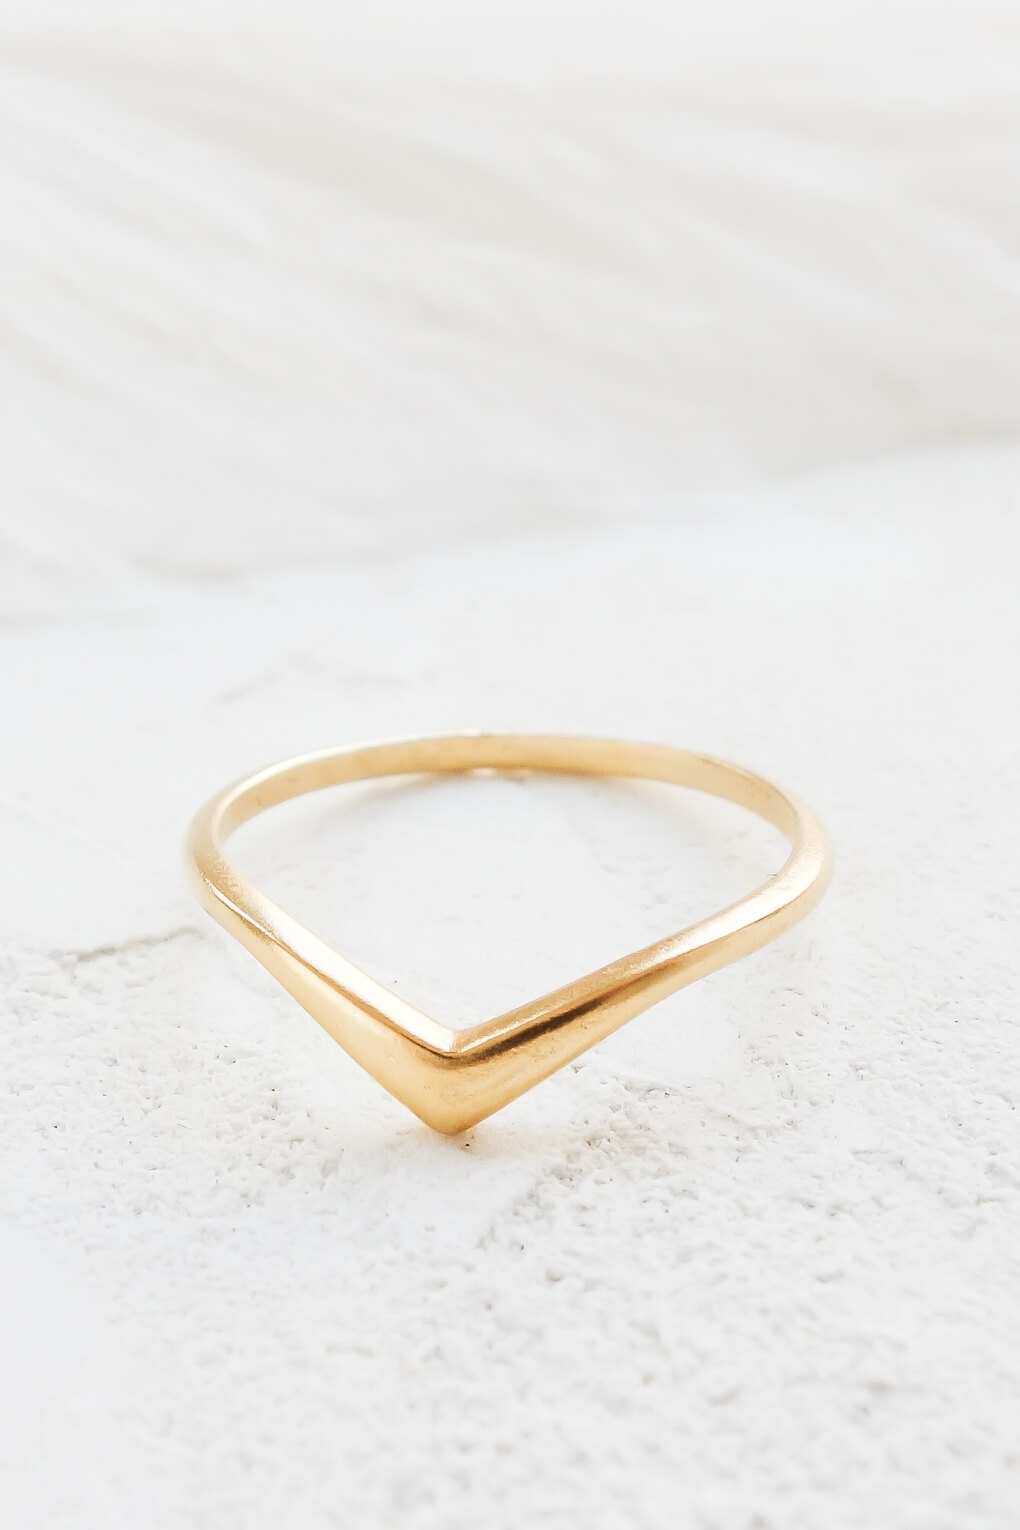 Shlomit Ofir | Solid Gold Chevron Ring – Shlomit Ofir Regarding Latest Chevron Rings White Gold (View 14 of 15)